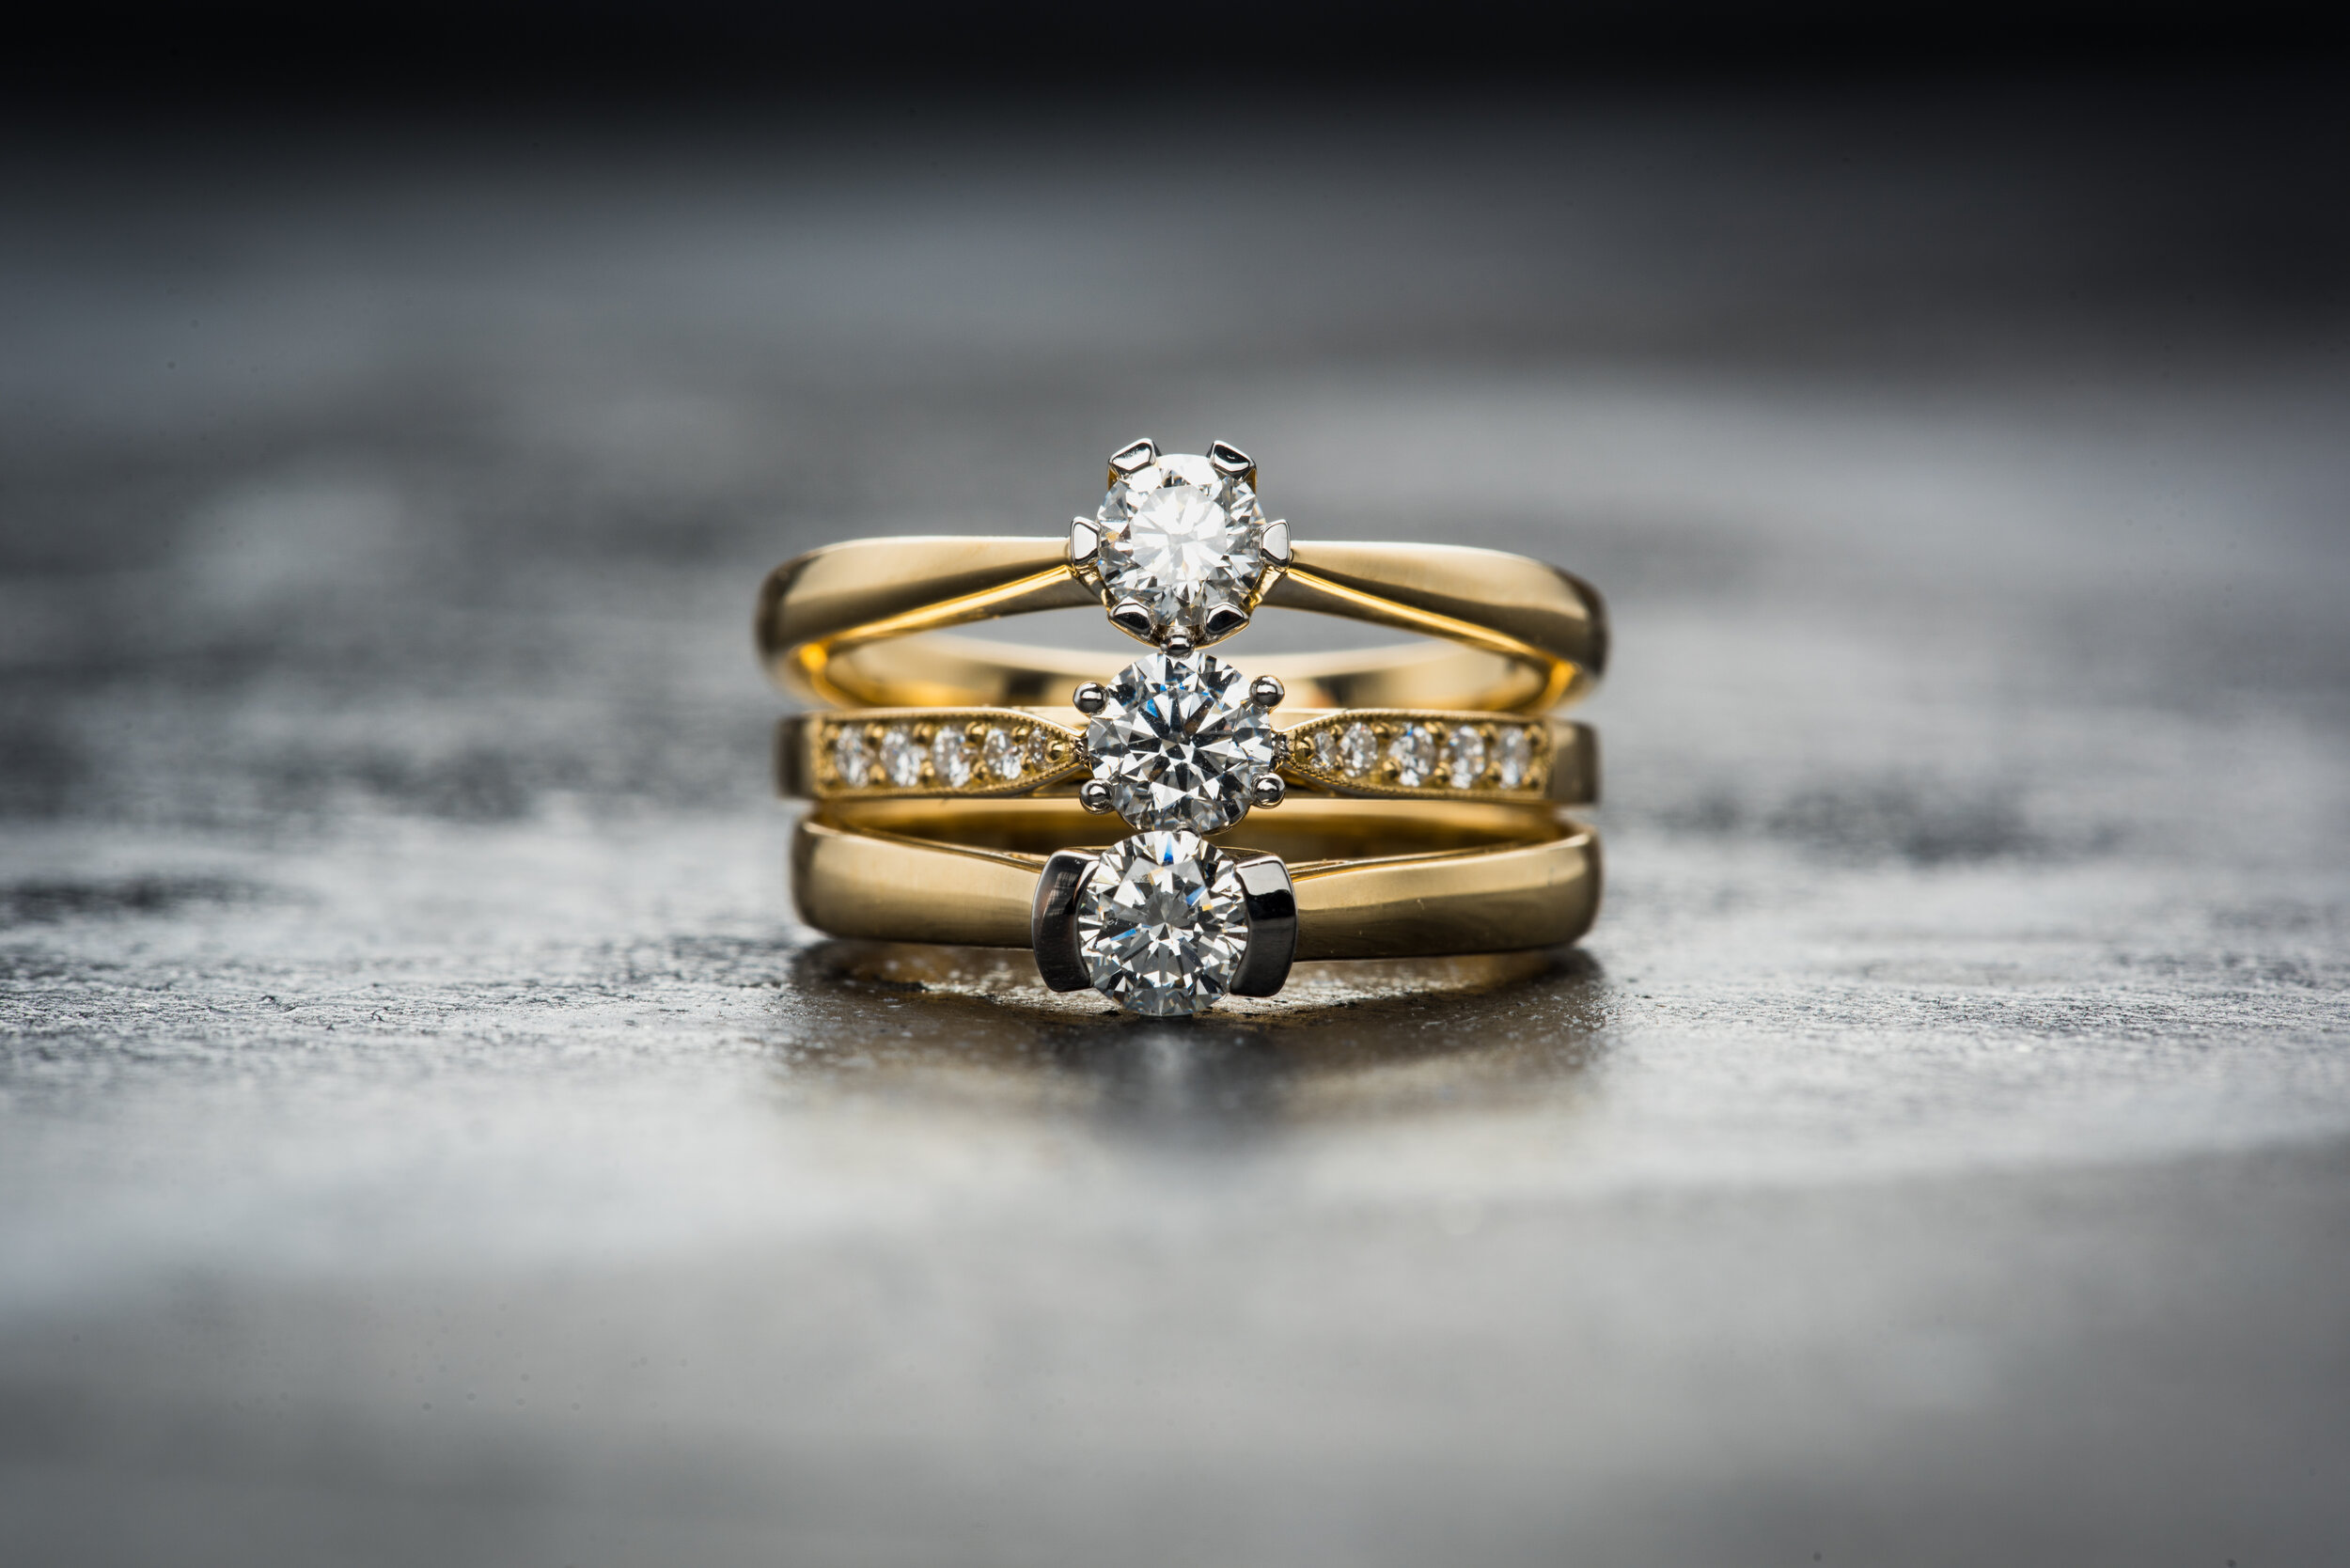 Begin your forever - with Hefner's Jewelers